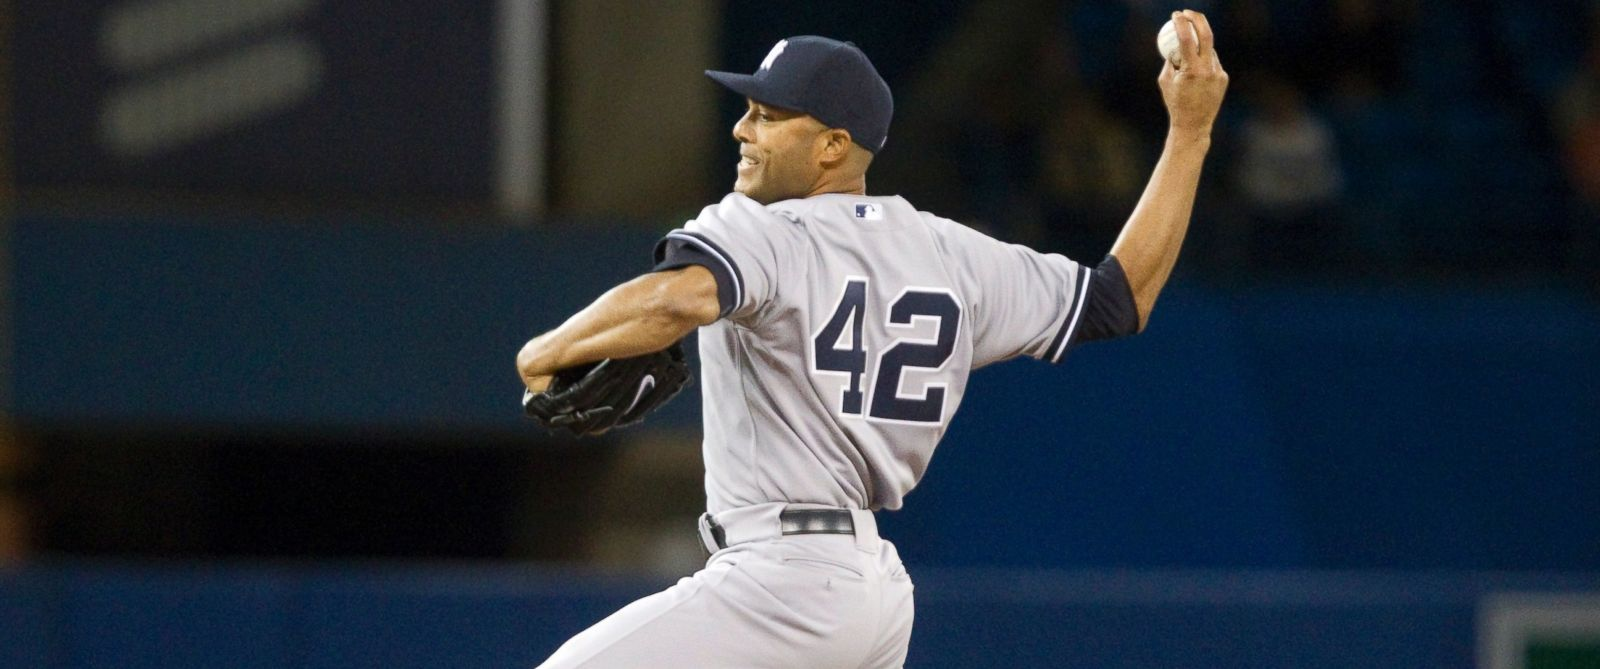 PHOTO: New York Yankees pitcher Mariano Rivera throws against the Toronto Blue Jays in the ninth inning of their American League MLB baseball game in Toronto Sept. 18, 2013.